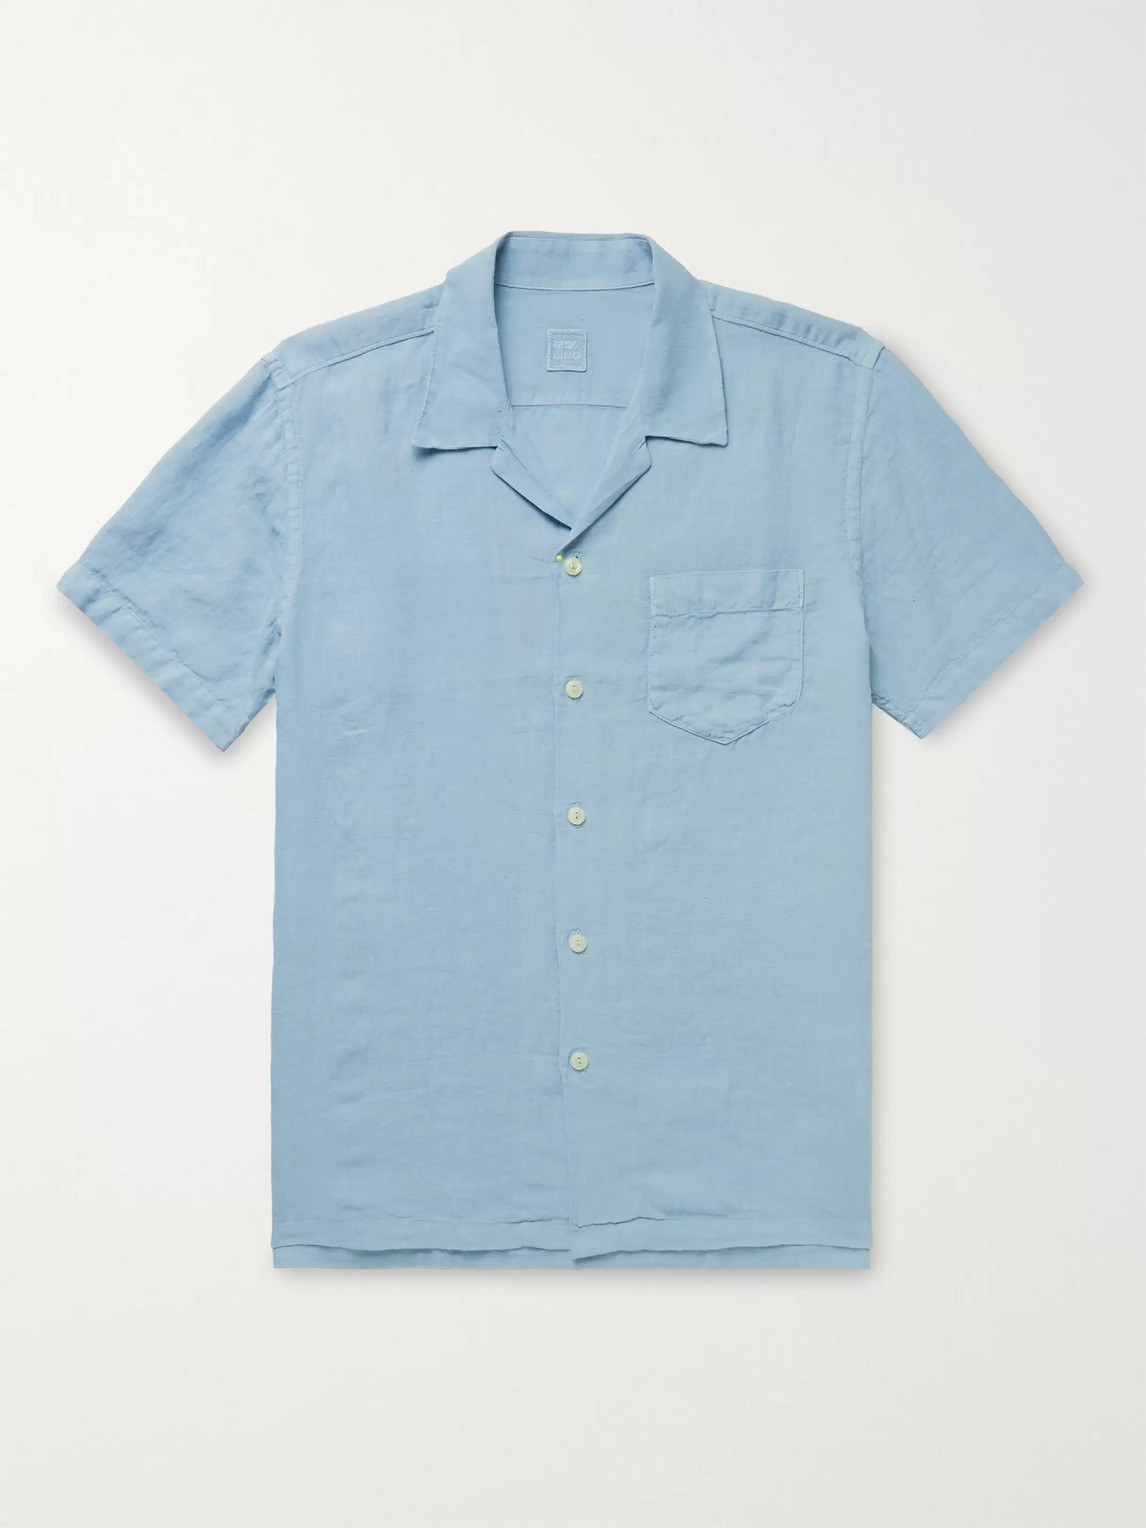 120% Camp-collar Linen Shirt In Blue